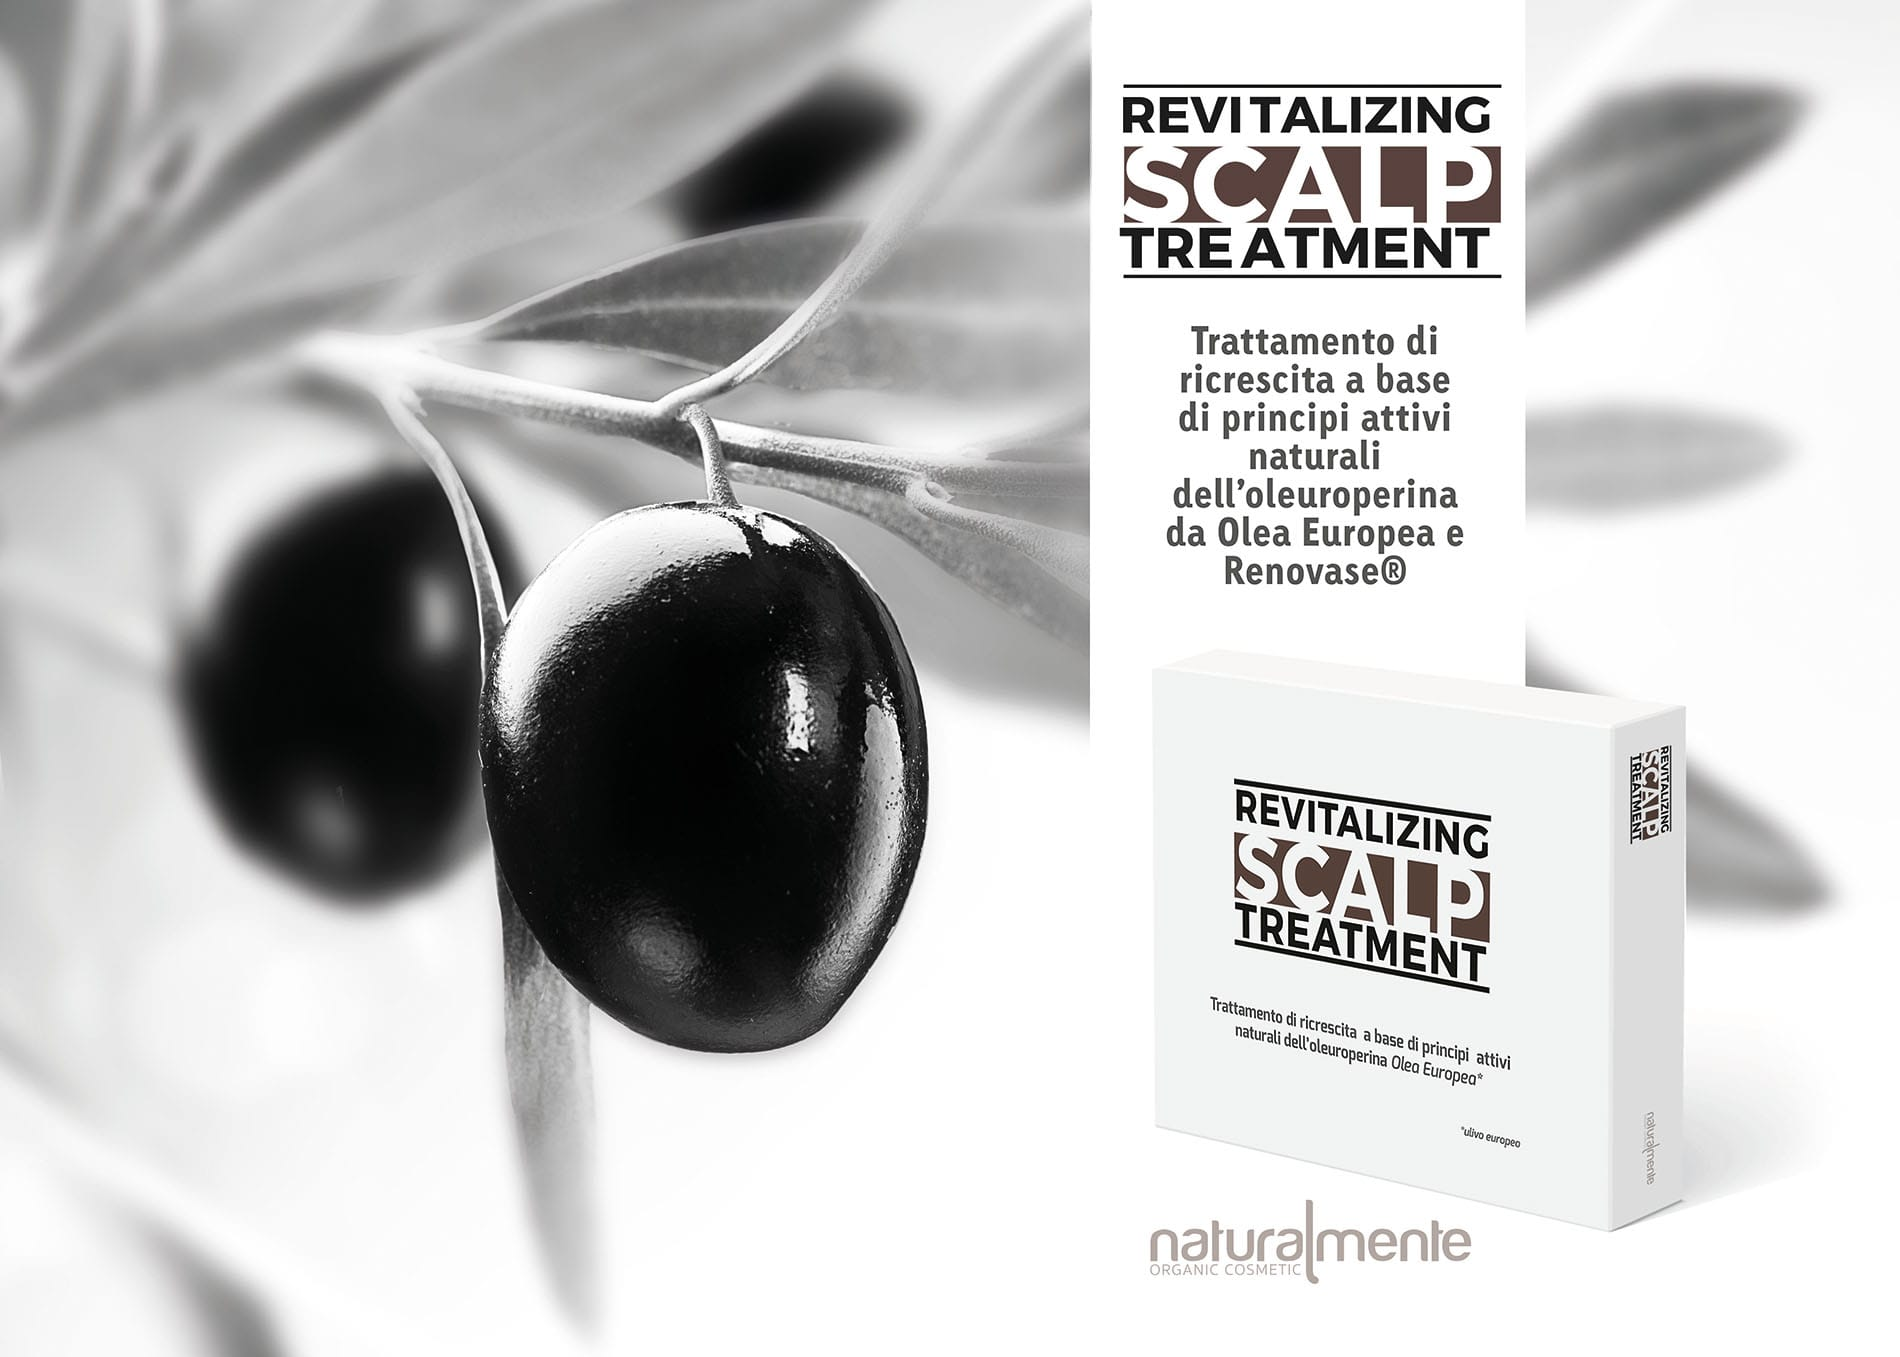 Revitalizing Scalp Treatment